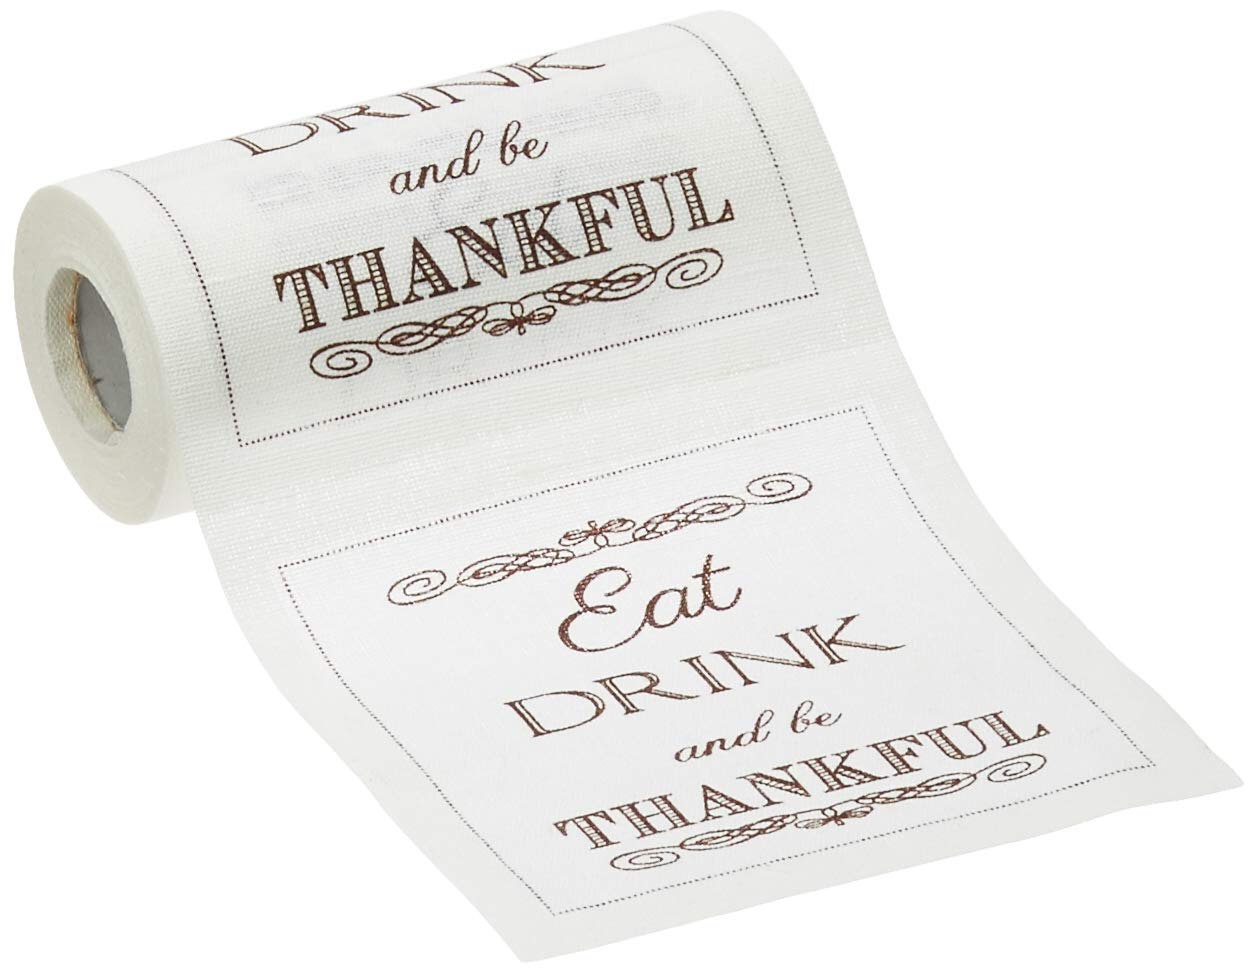 Linen Printed Cocktail Napkin - 4.5 x 4.5 in. - 50 units per roll -  Eat Drink Be Thankful by MY DRAP